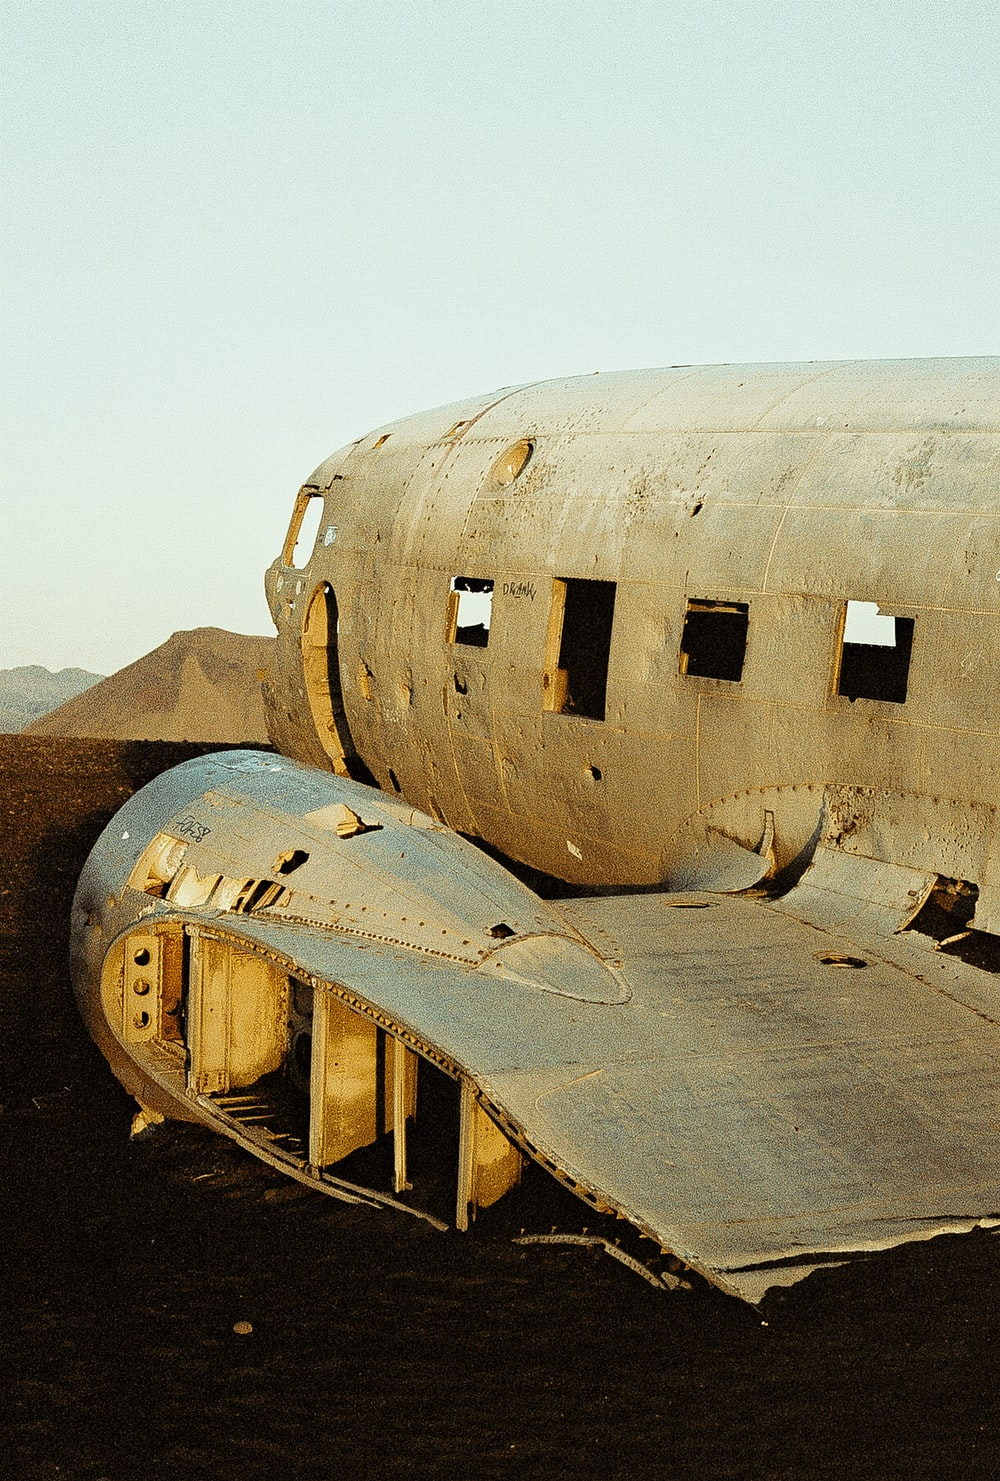 wrecked white and brown airplane